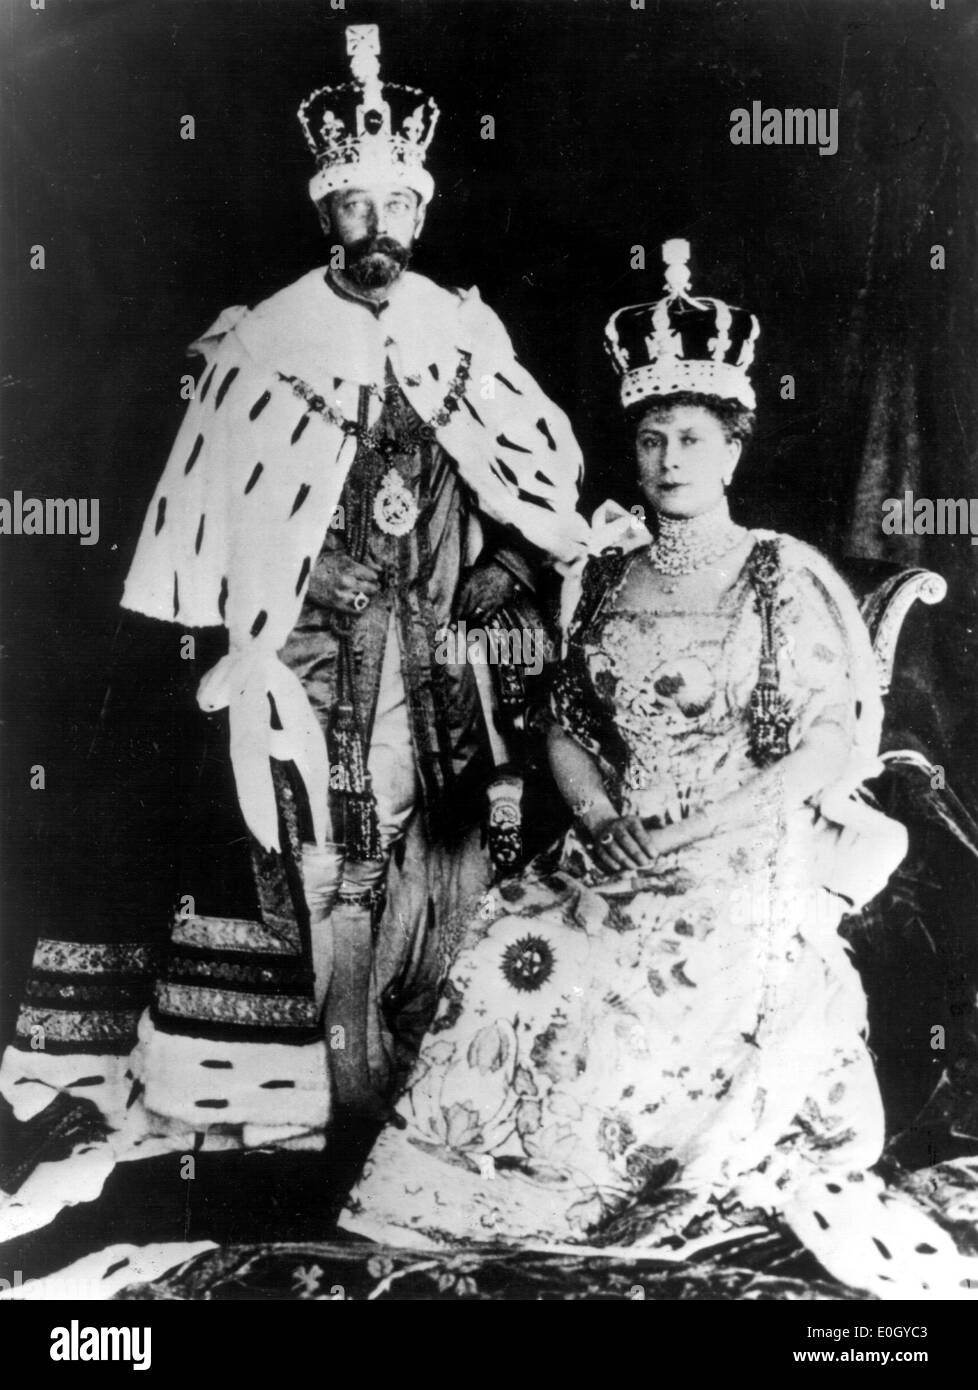 931a6527 King George V Stock Photos & King George V Stock Images - Alamy